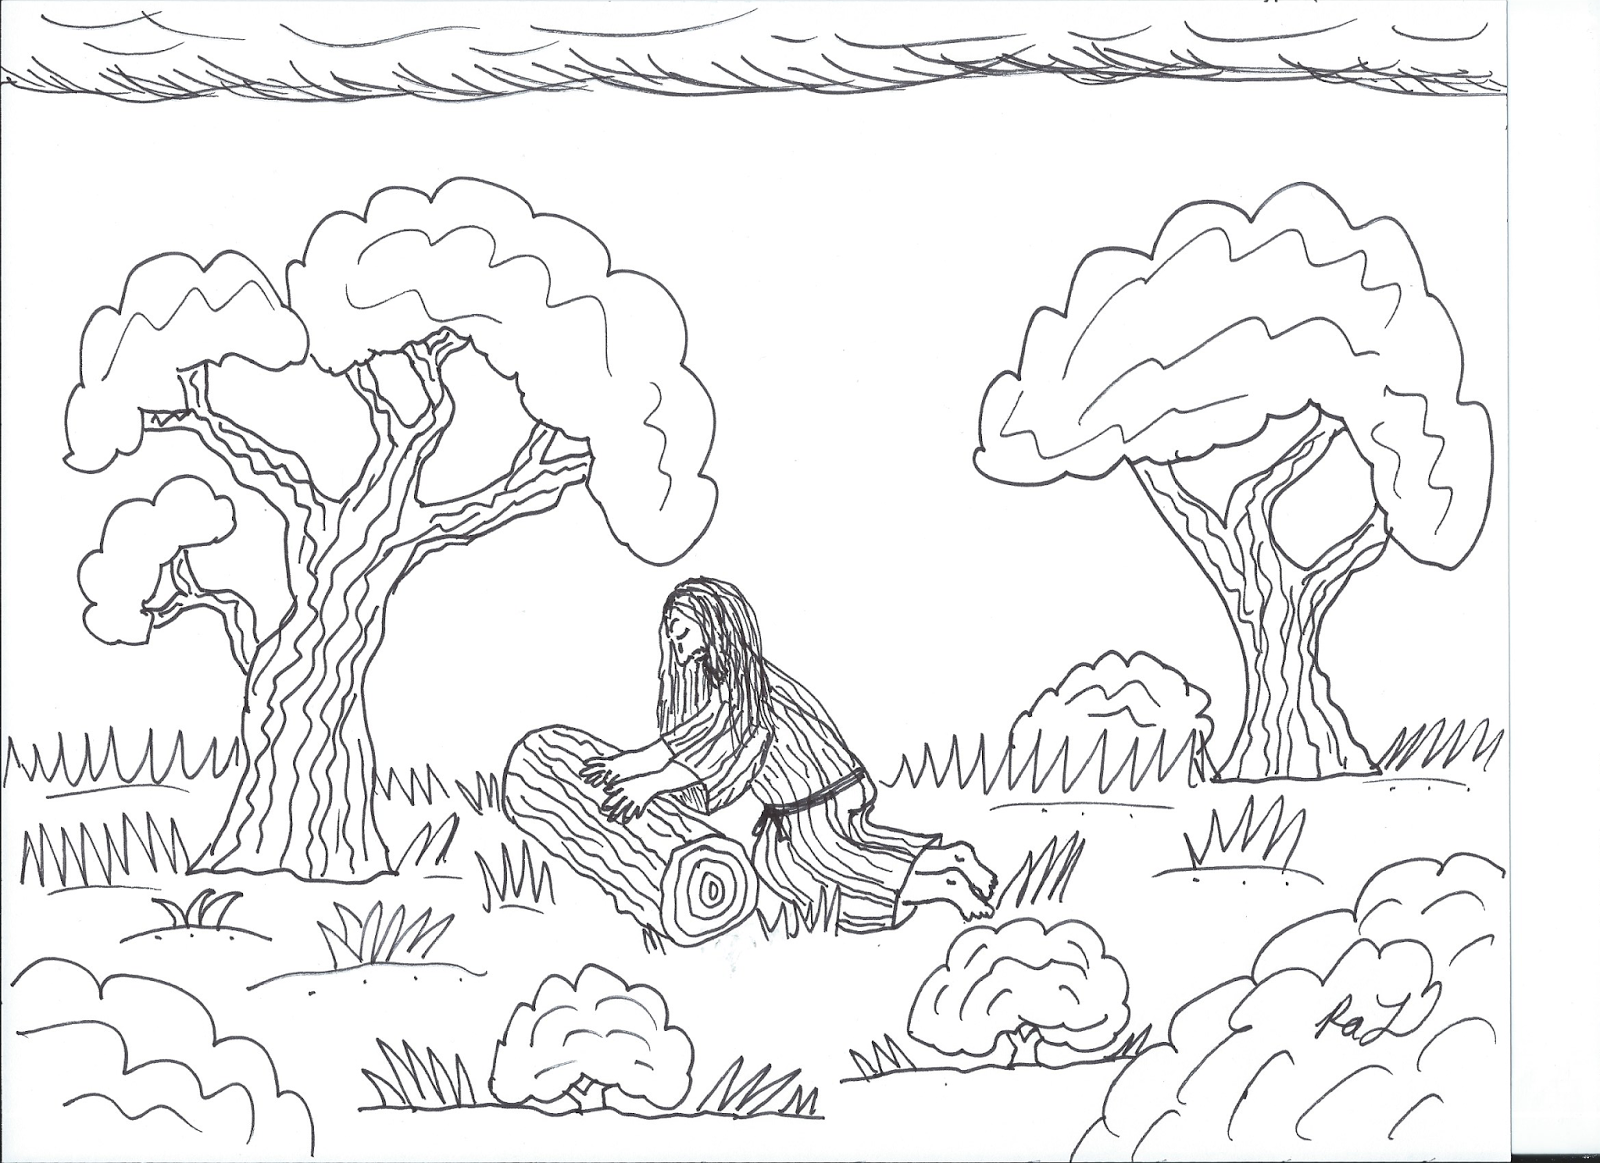 gethsemane coloring pages - photo#23